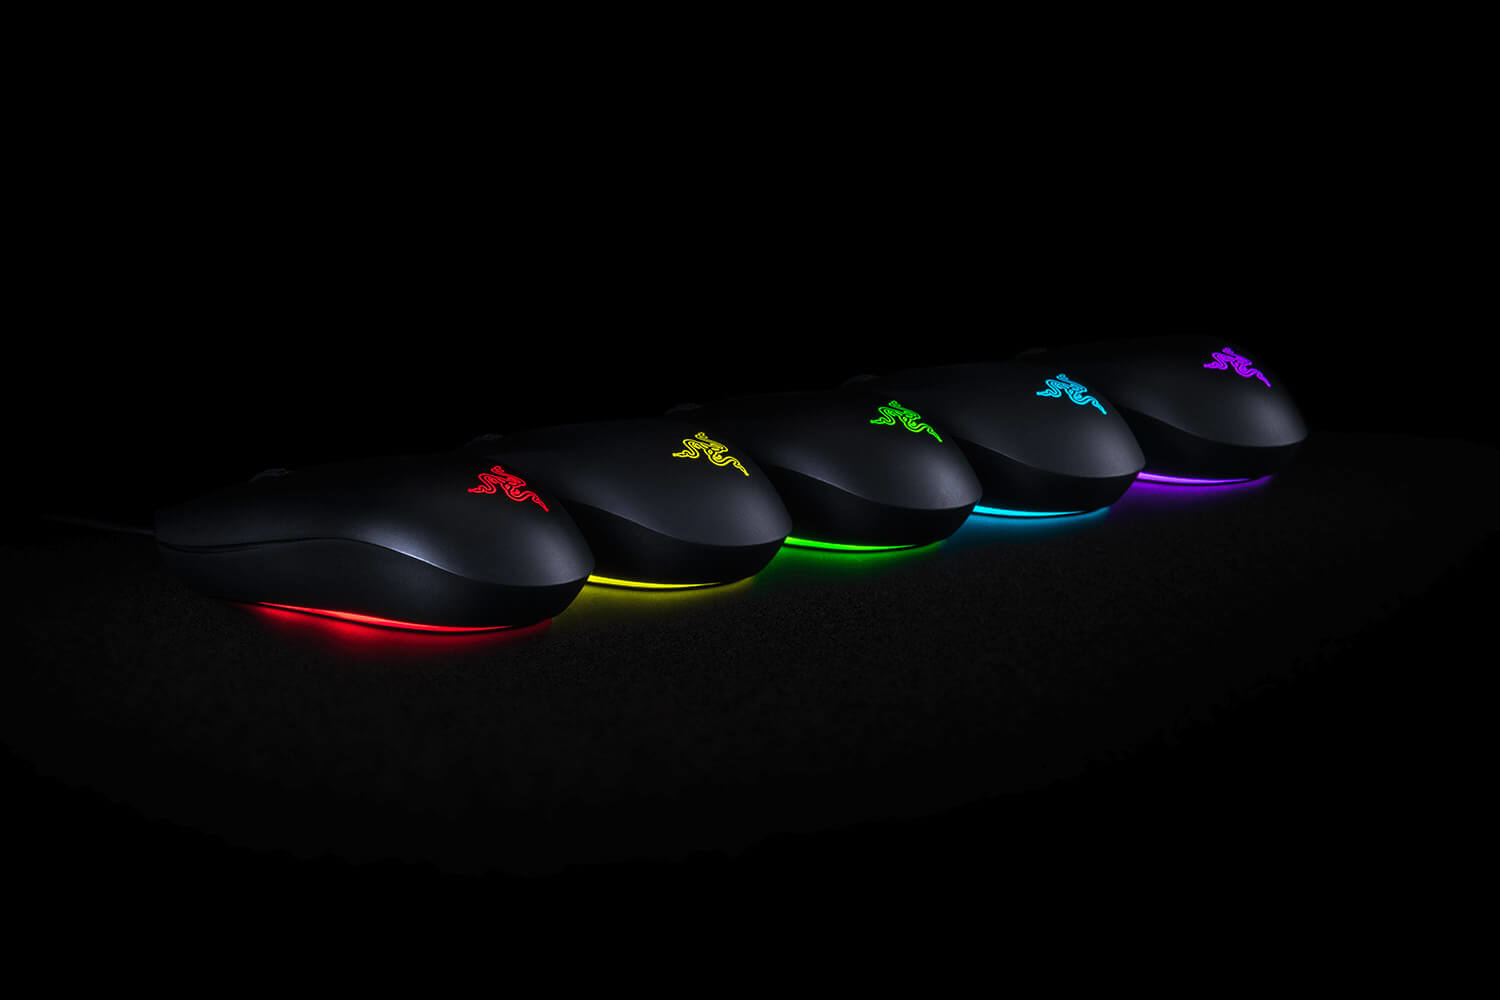 c51428cc4e4 www.CUSTOMPC.ie - Razer Abyssus Essential mice USB Optical 7200 DPI ...